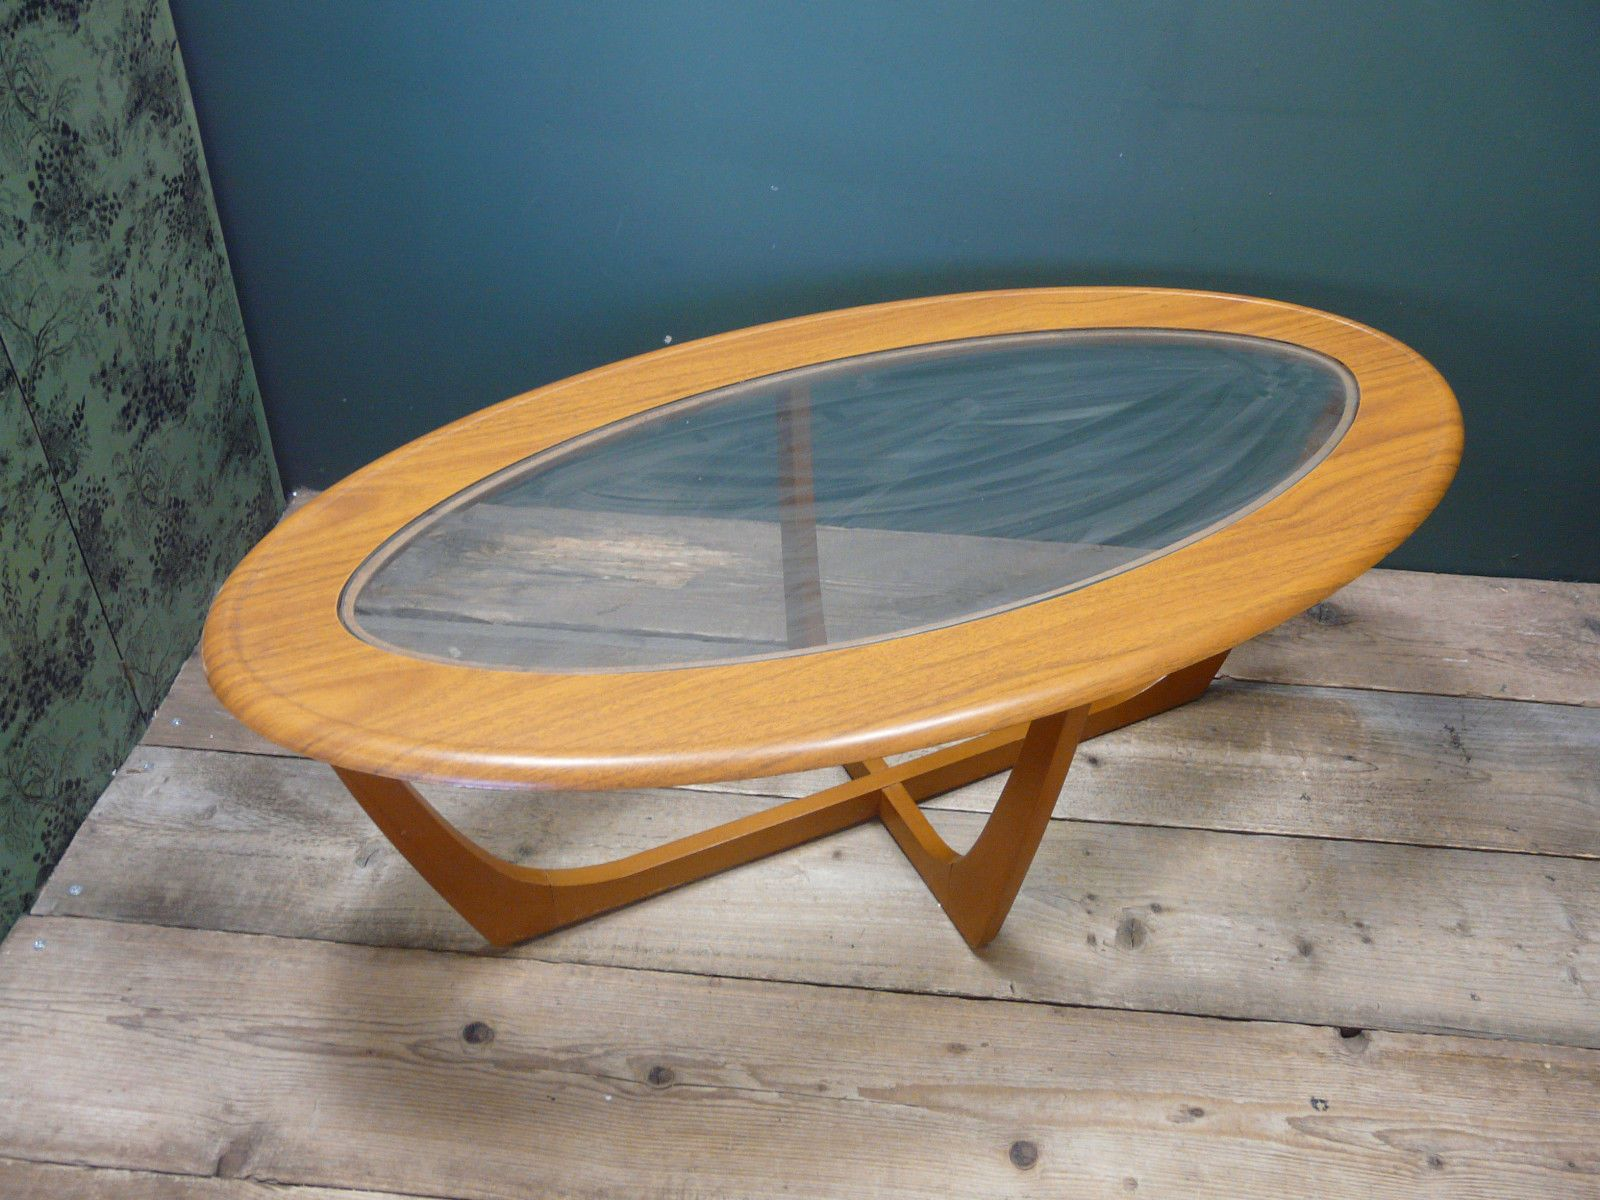 Vintage danish style 50s 60s glass top coffee table ebay vintage danish style 50s 60s glass top coffee table ebay geotapseo Gallery